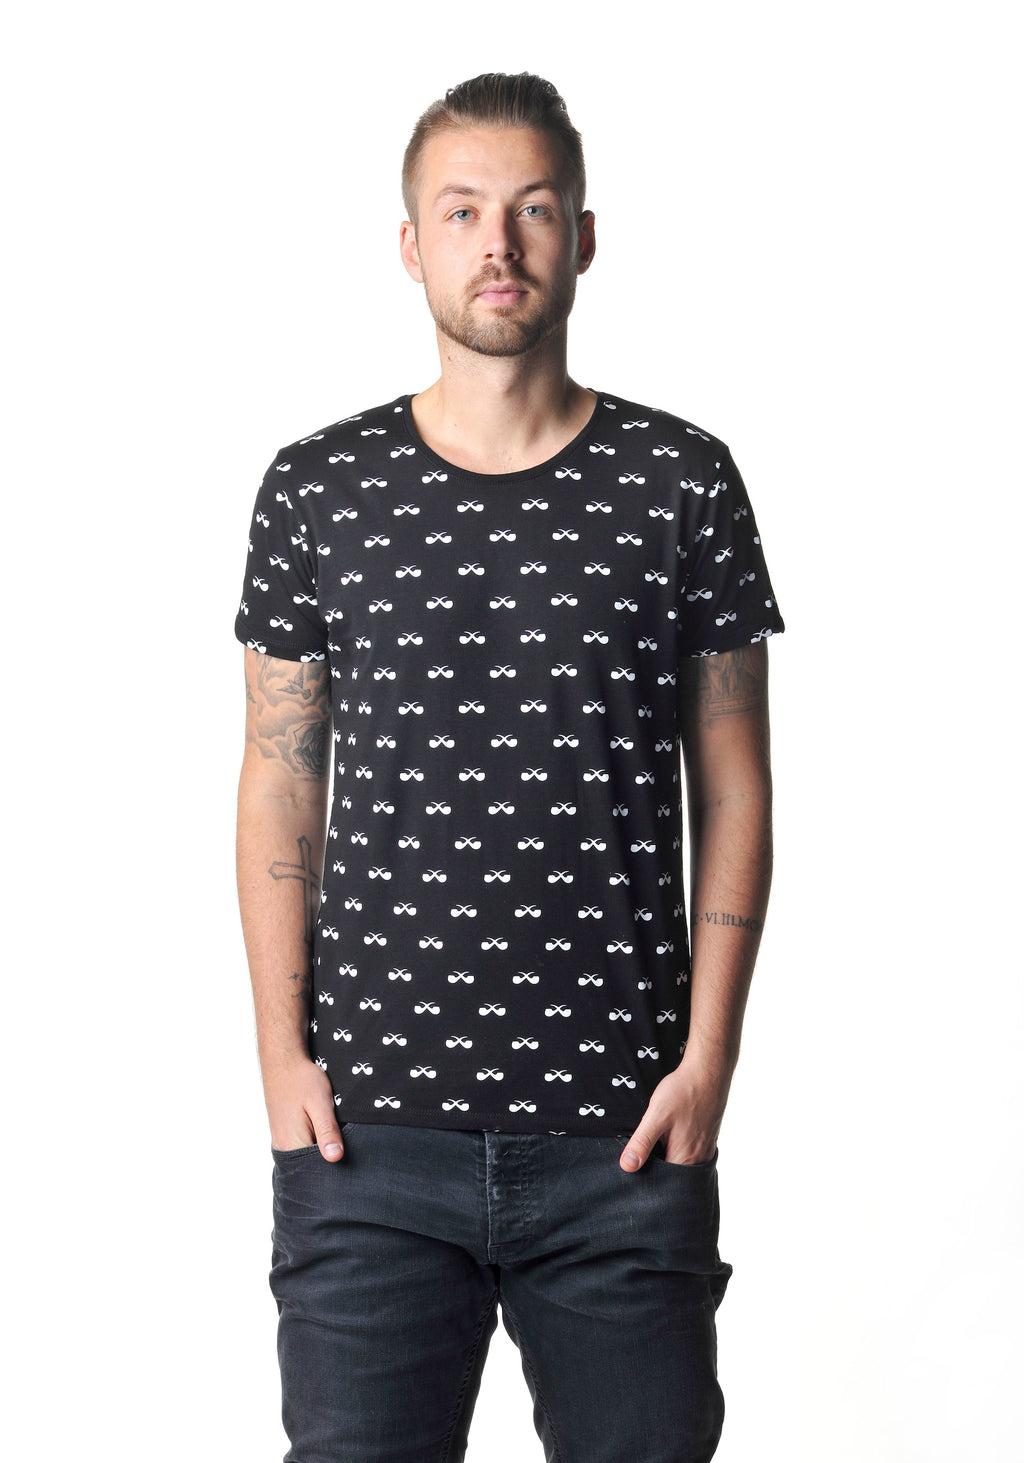 All-Over Shirt Pfeifen black